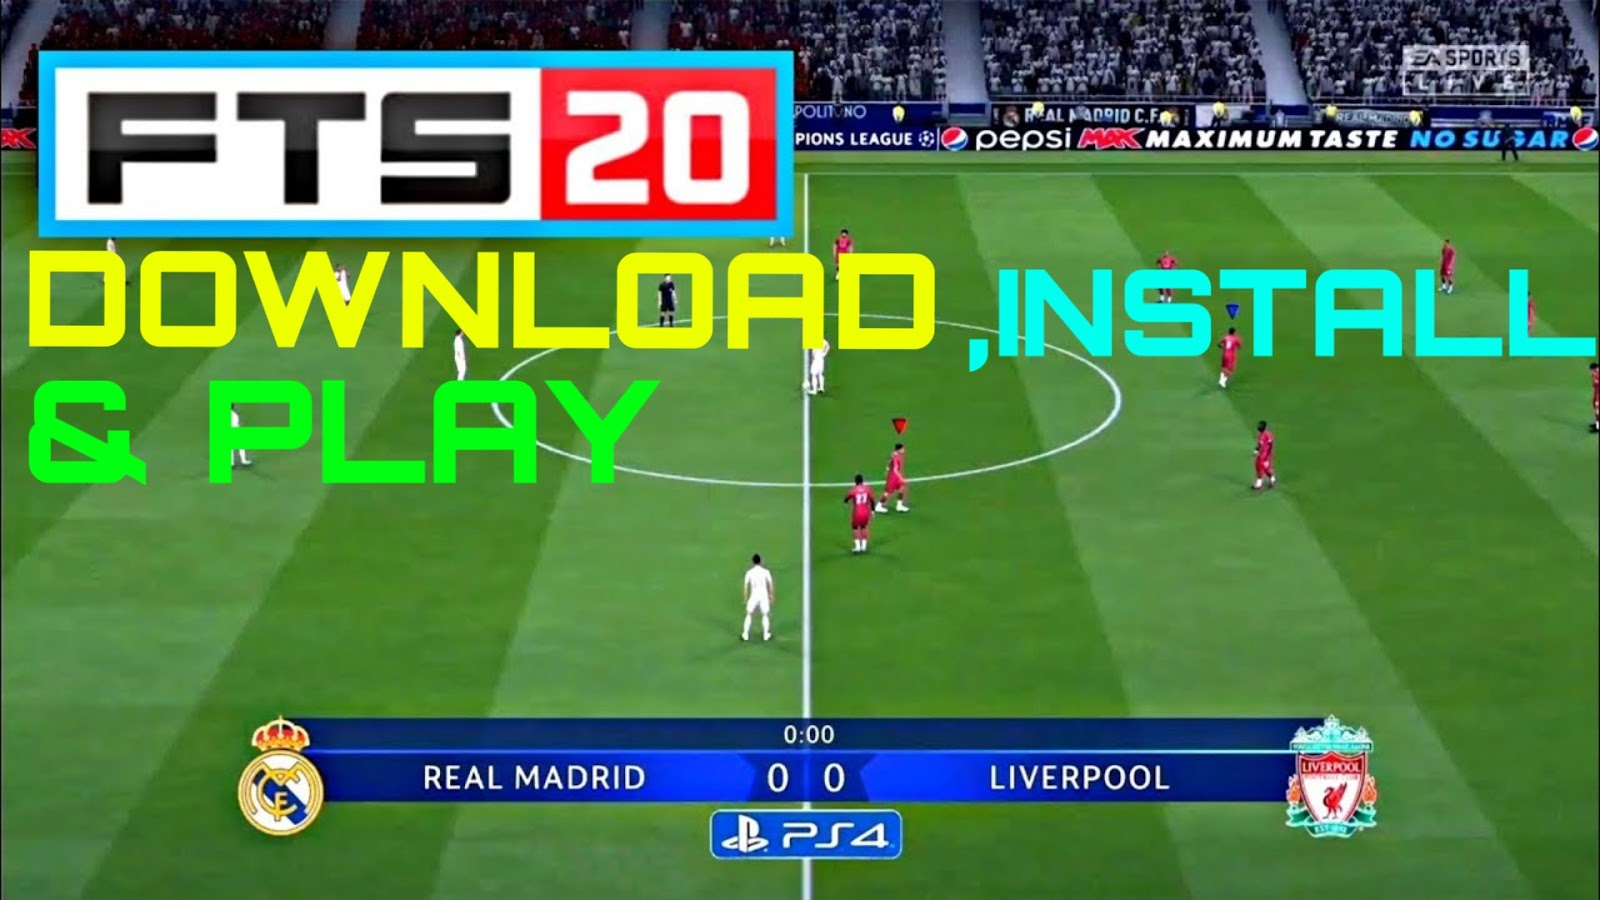 fts 2020 download for android offline how to download install and play first touch soccer 2020 fts 20 by test with dakshal patel official test with dakshal patel fts 2020 download for android offline